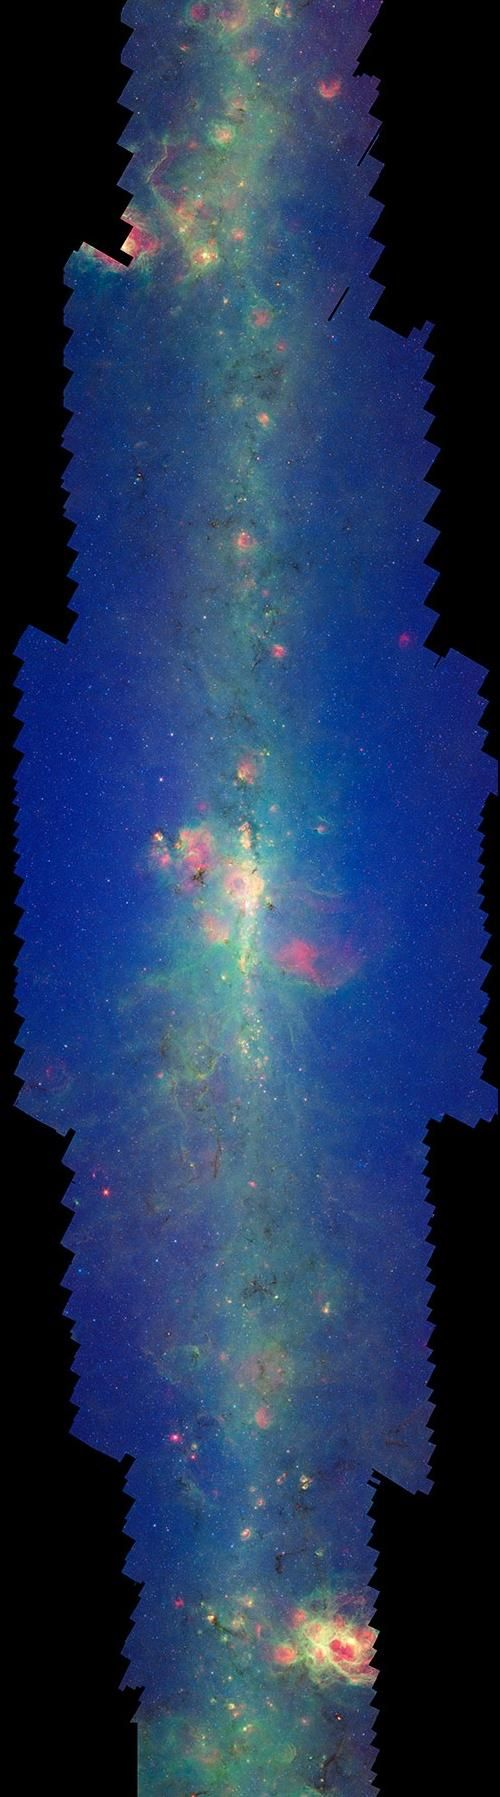 The Spitzer Space Telescope's encompasing infrared view of the plane of our Milky Way Galaxy